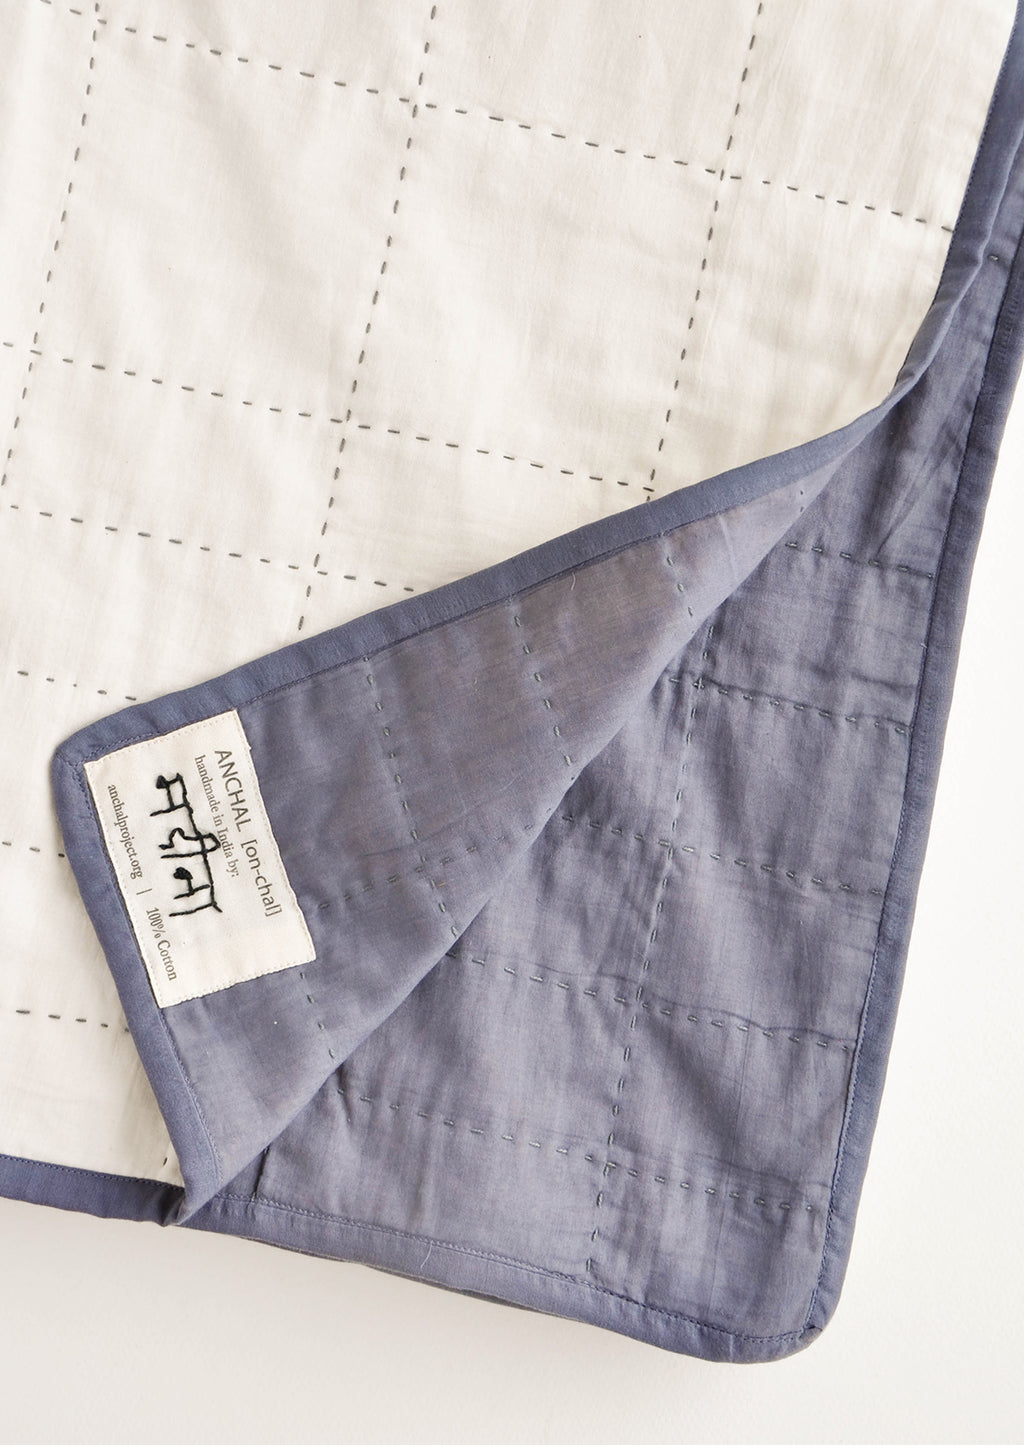 3: Maker tag detail on slate blue colored side of reversible organic cotton quilt, featuring grid pattern stitching